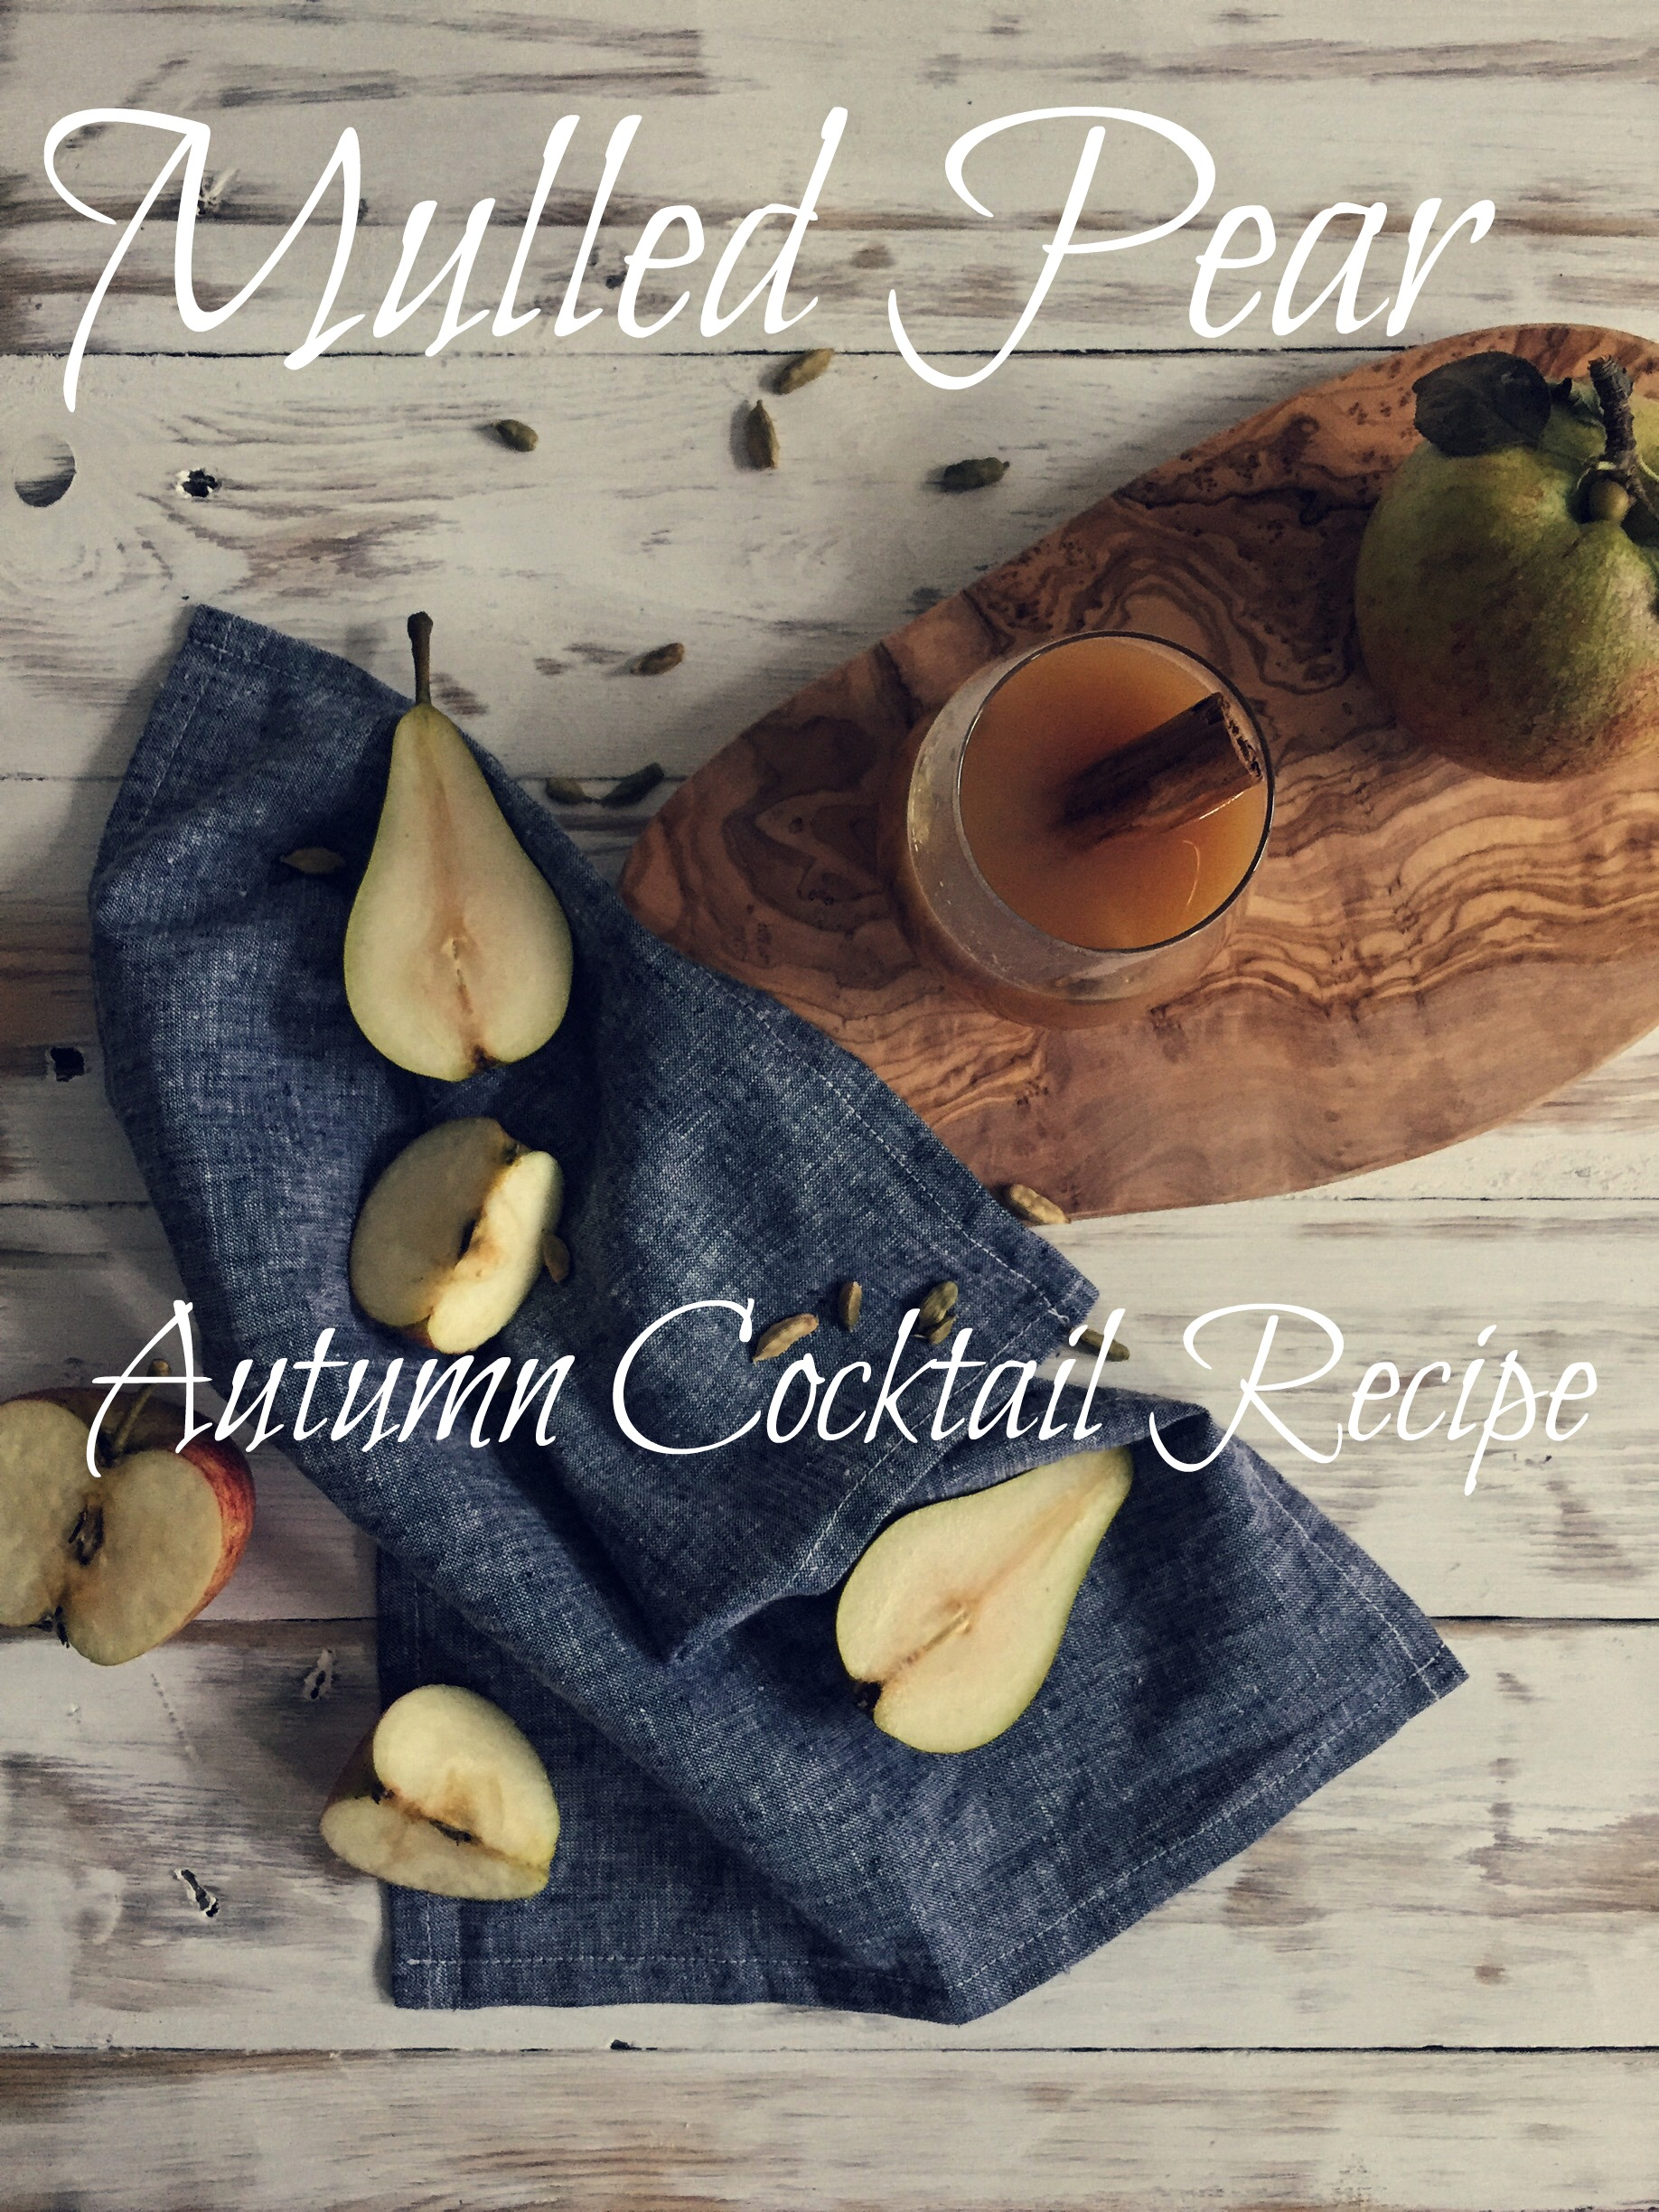 Mulled Pear Autumn Cocktail Recipe